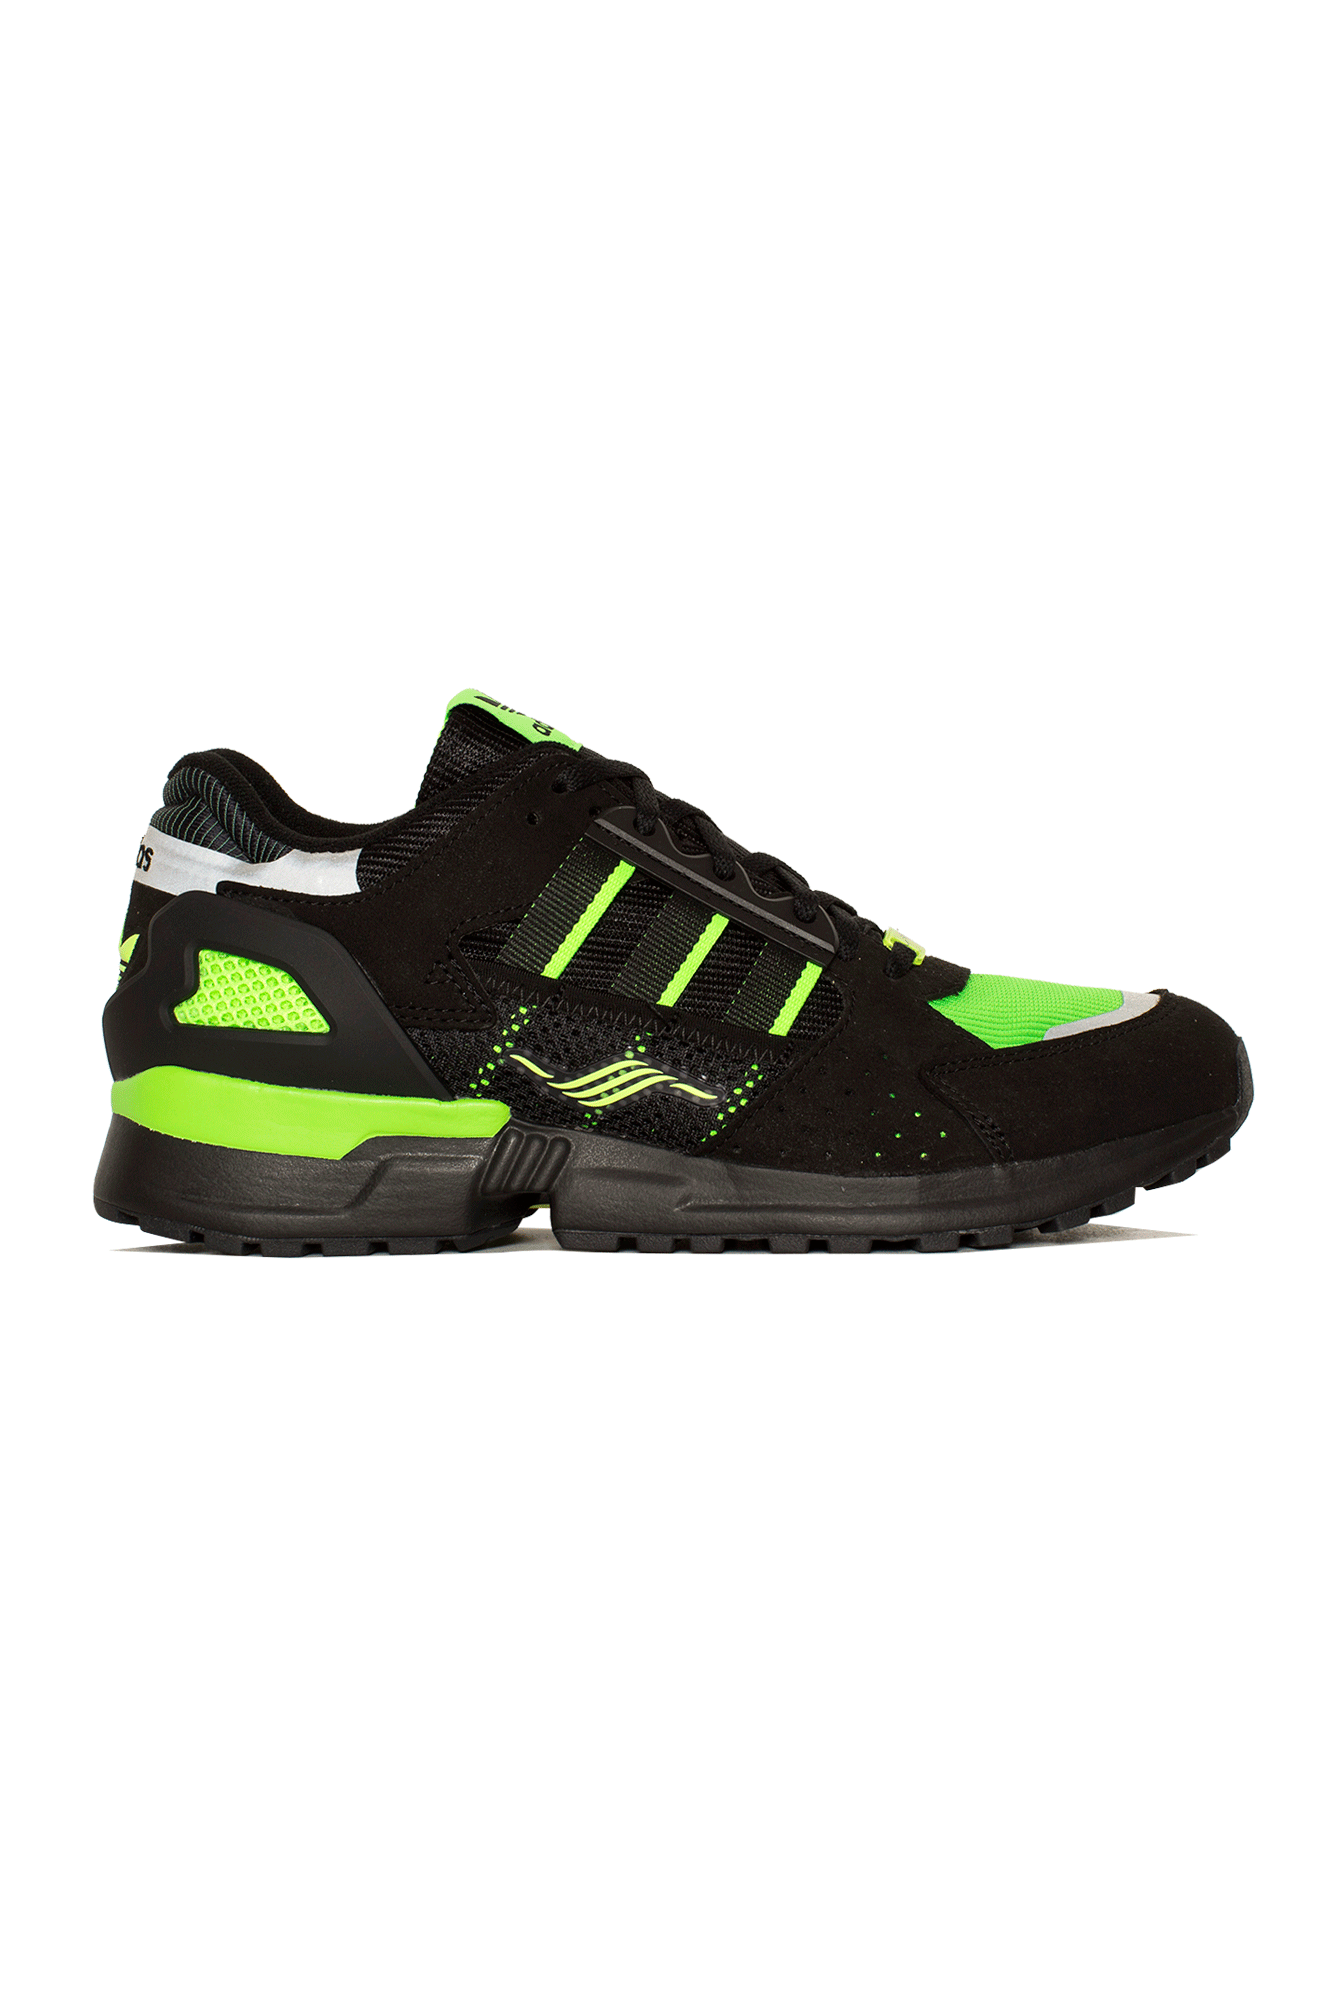 Adidas Originals Sneakers ZX 10,000 C Nero EG8964#000#CBLK#7,5 - One Block Down